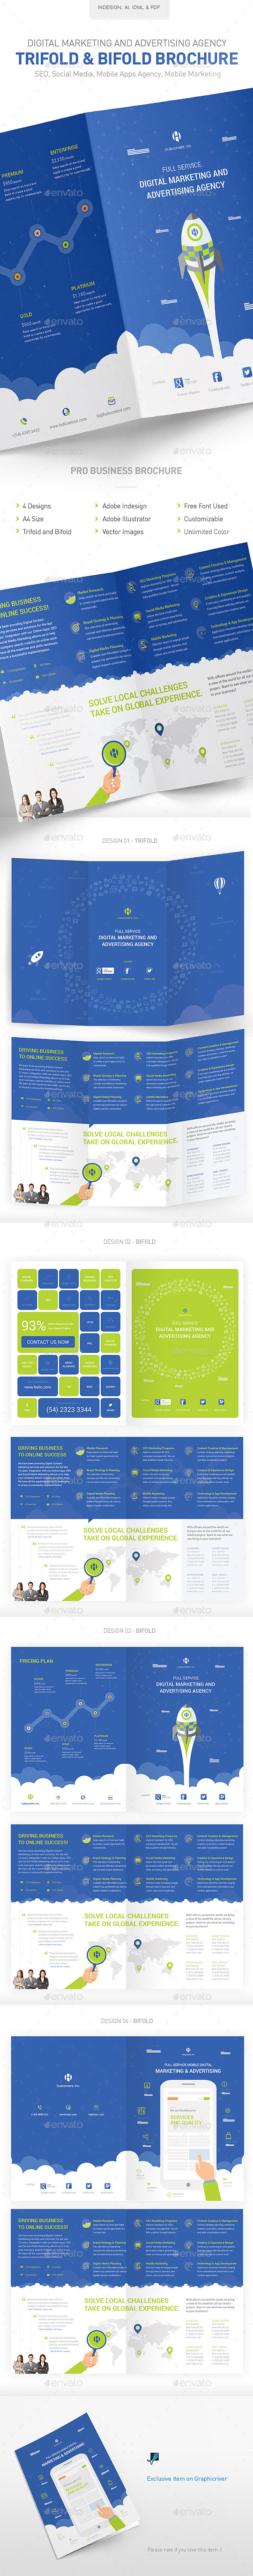 Digital Marketing & Advertising Agency Brochure - Brochures Print Templates